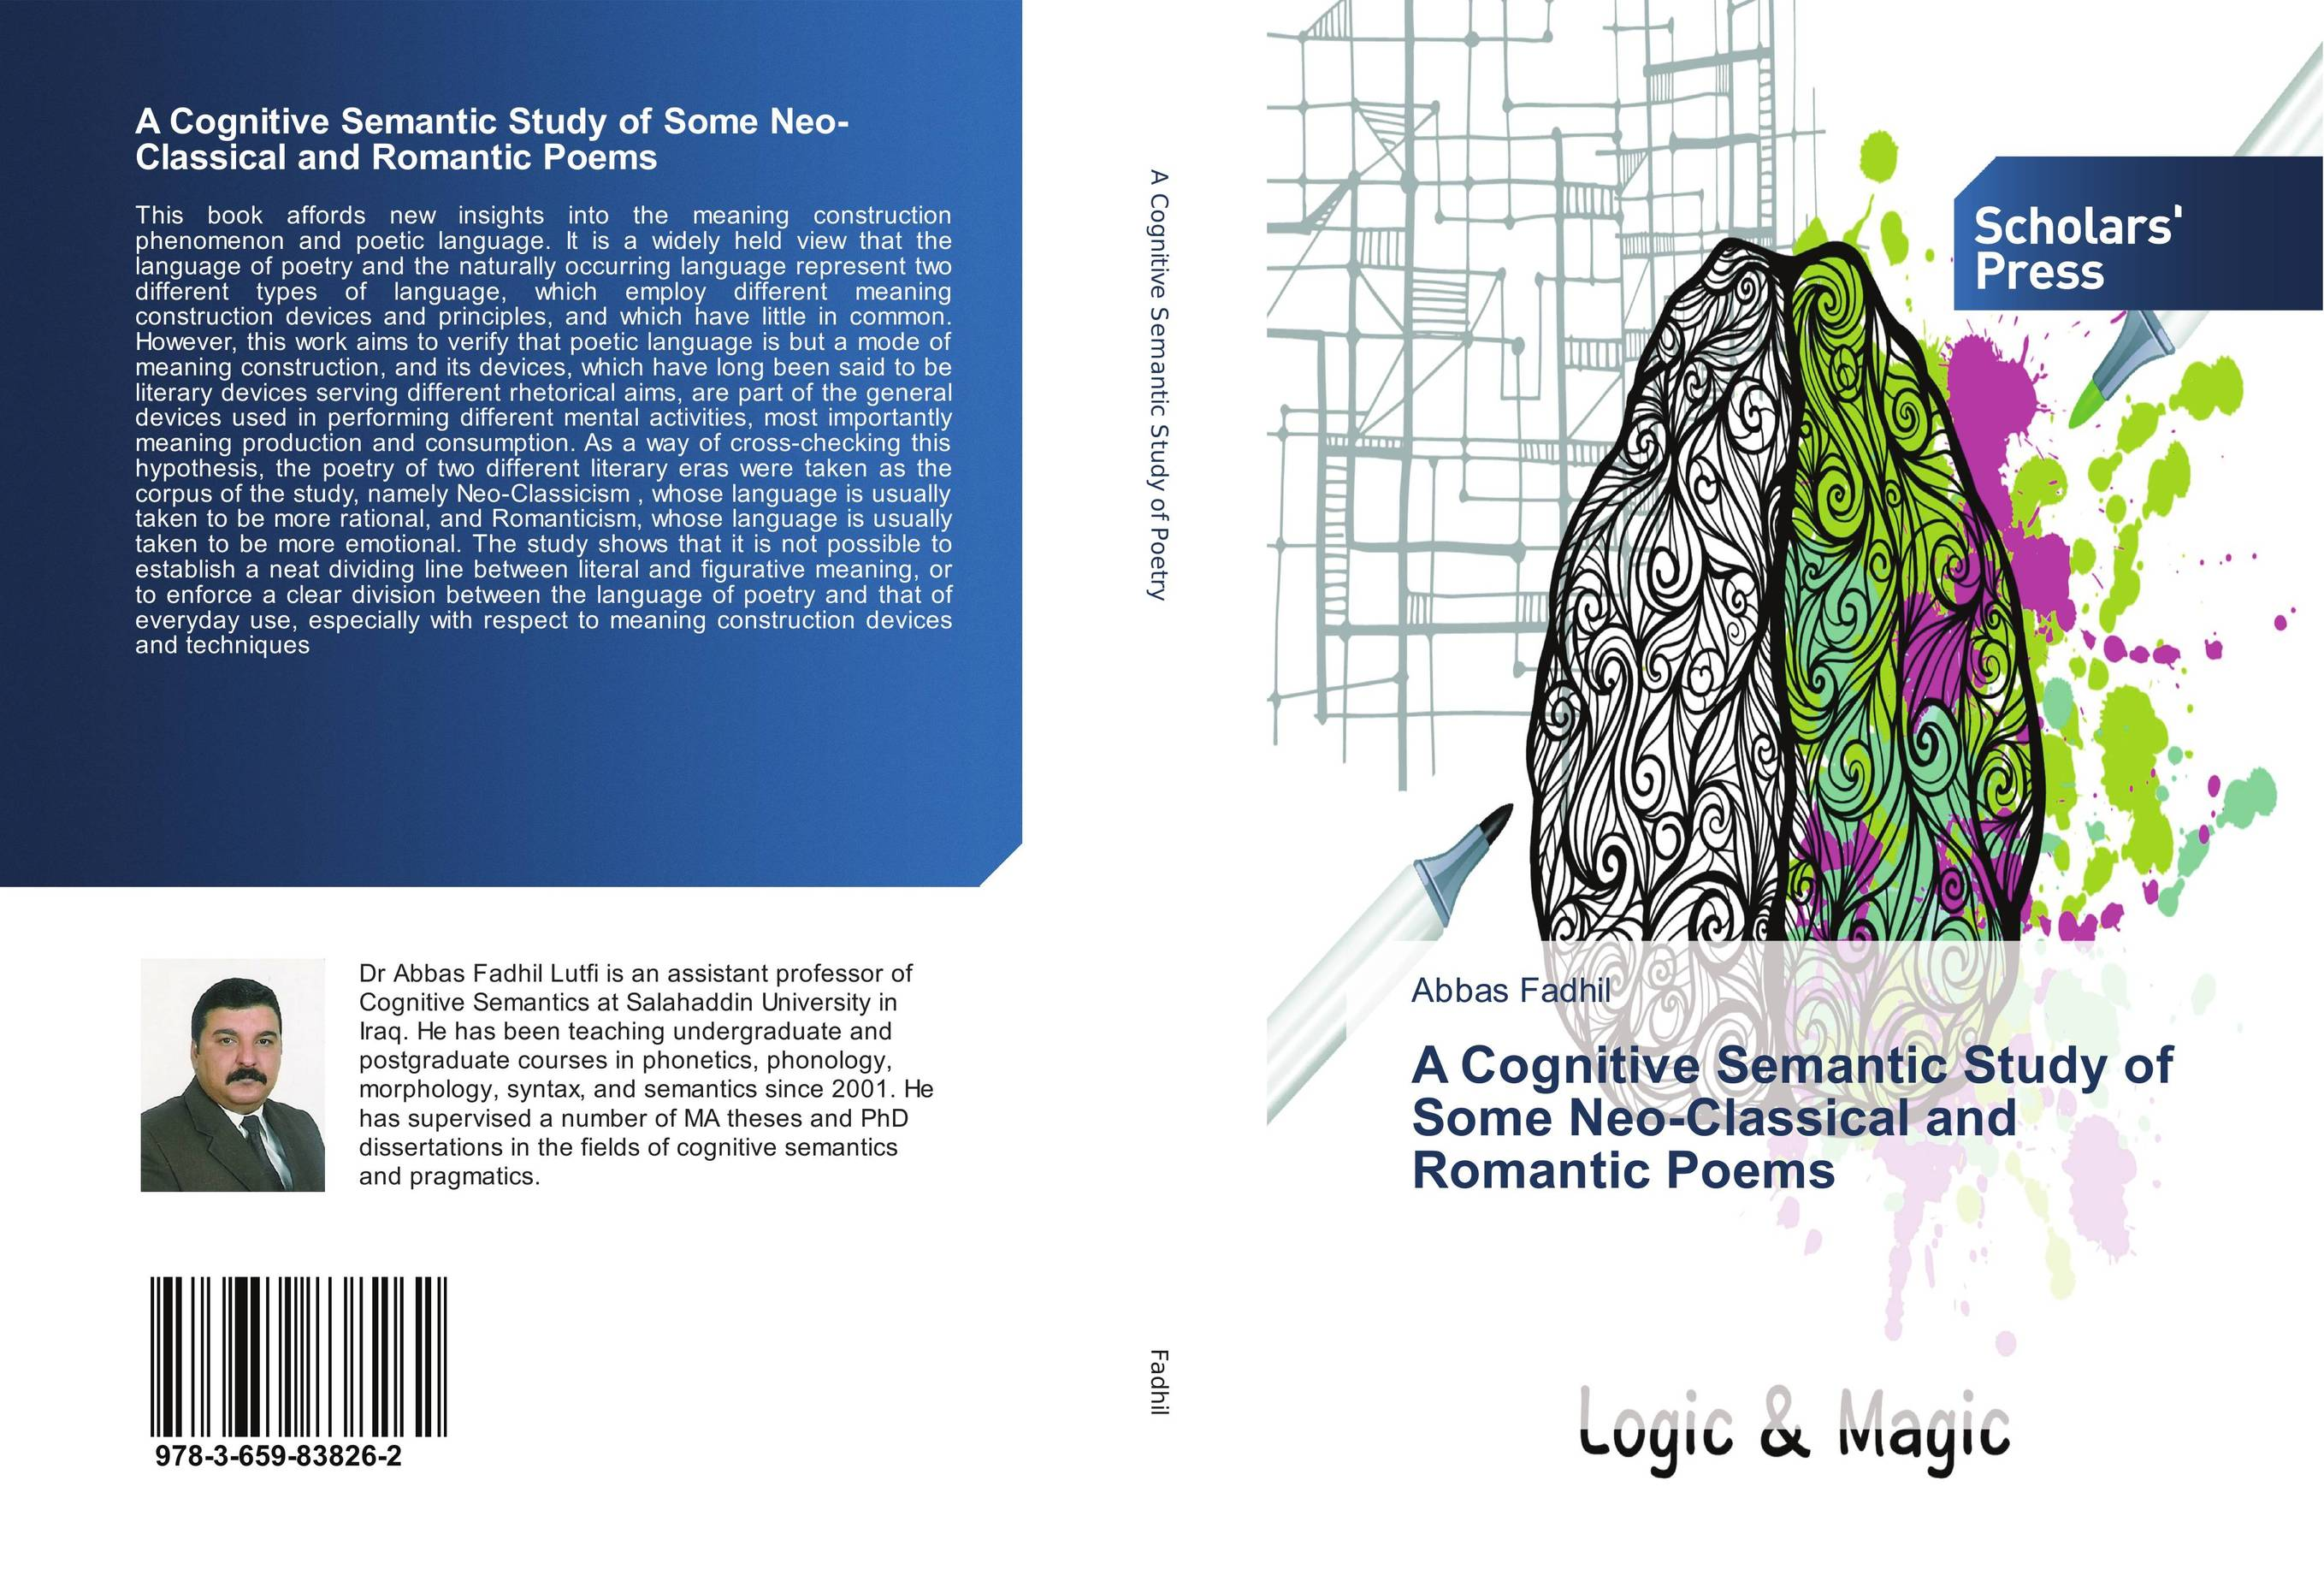 A Cognitive Semantic Study of Some Neo-Classical and Romantic Poems more meaning 50mm